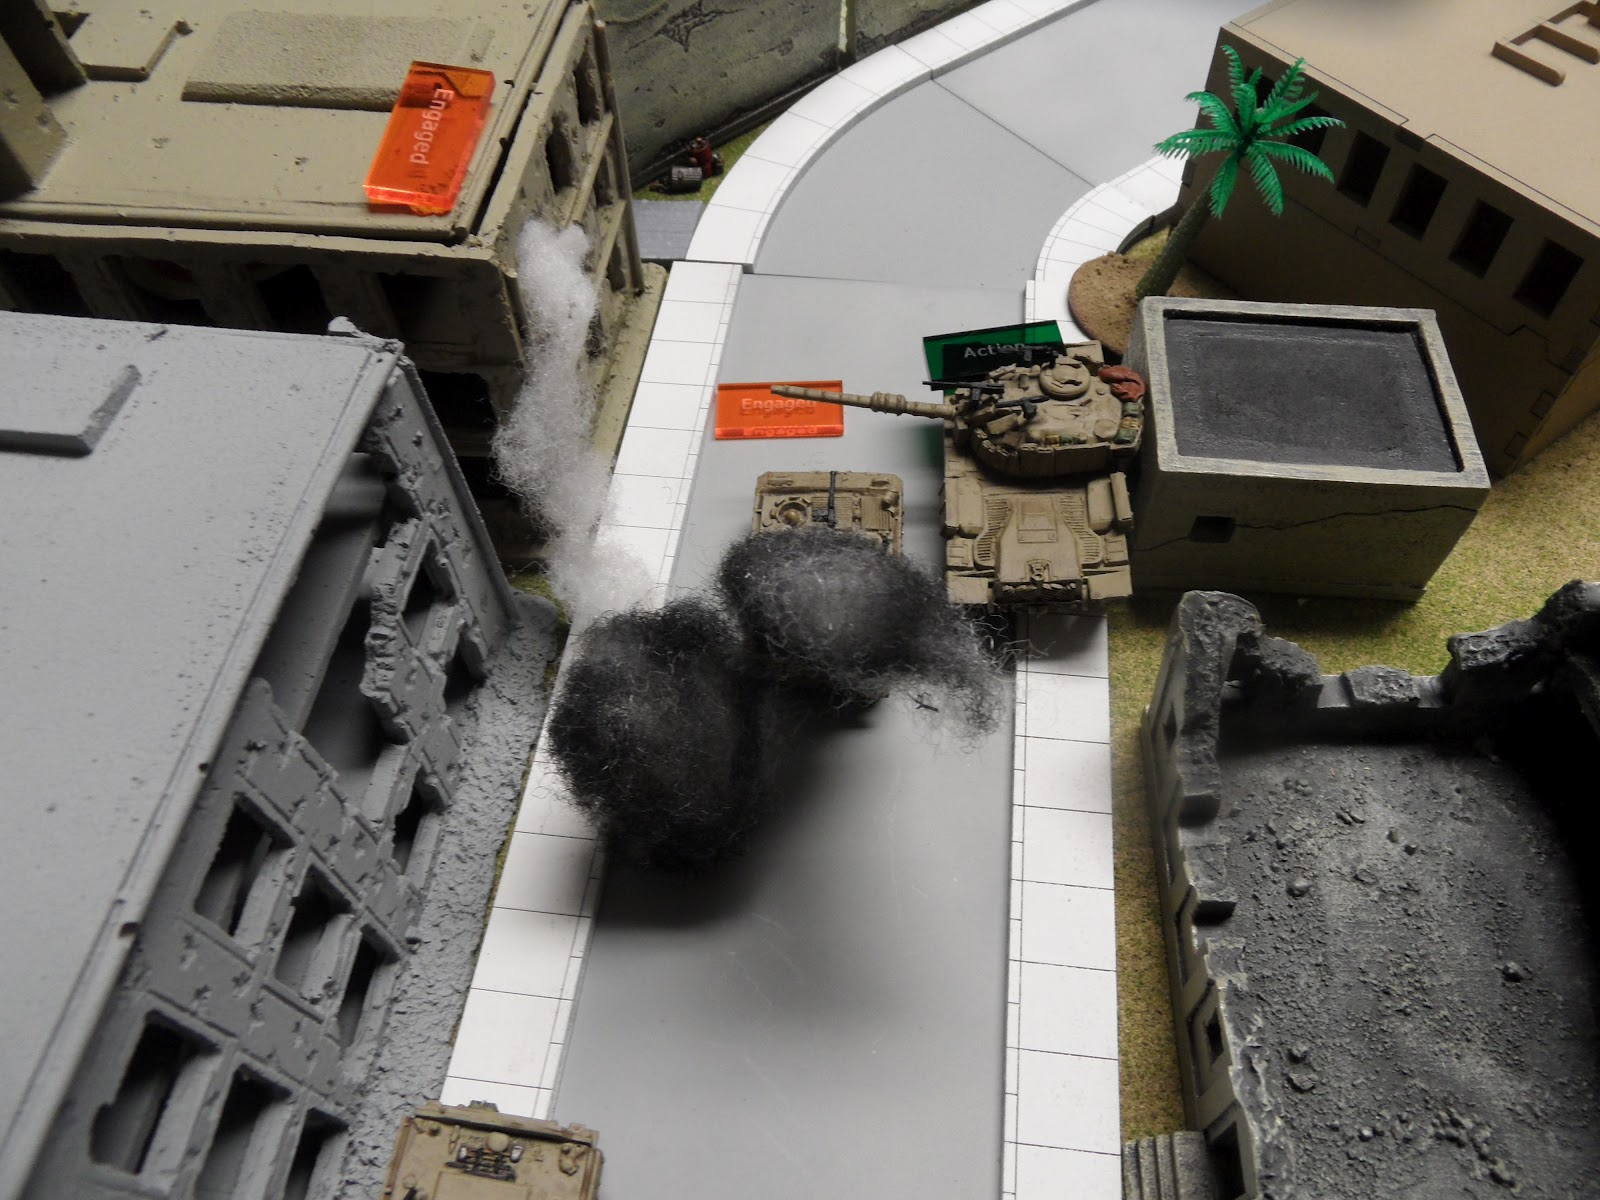 Until the next shot, which turns it into a pillbox and takes an Israeli out of action.